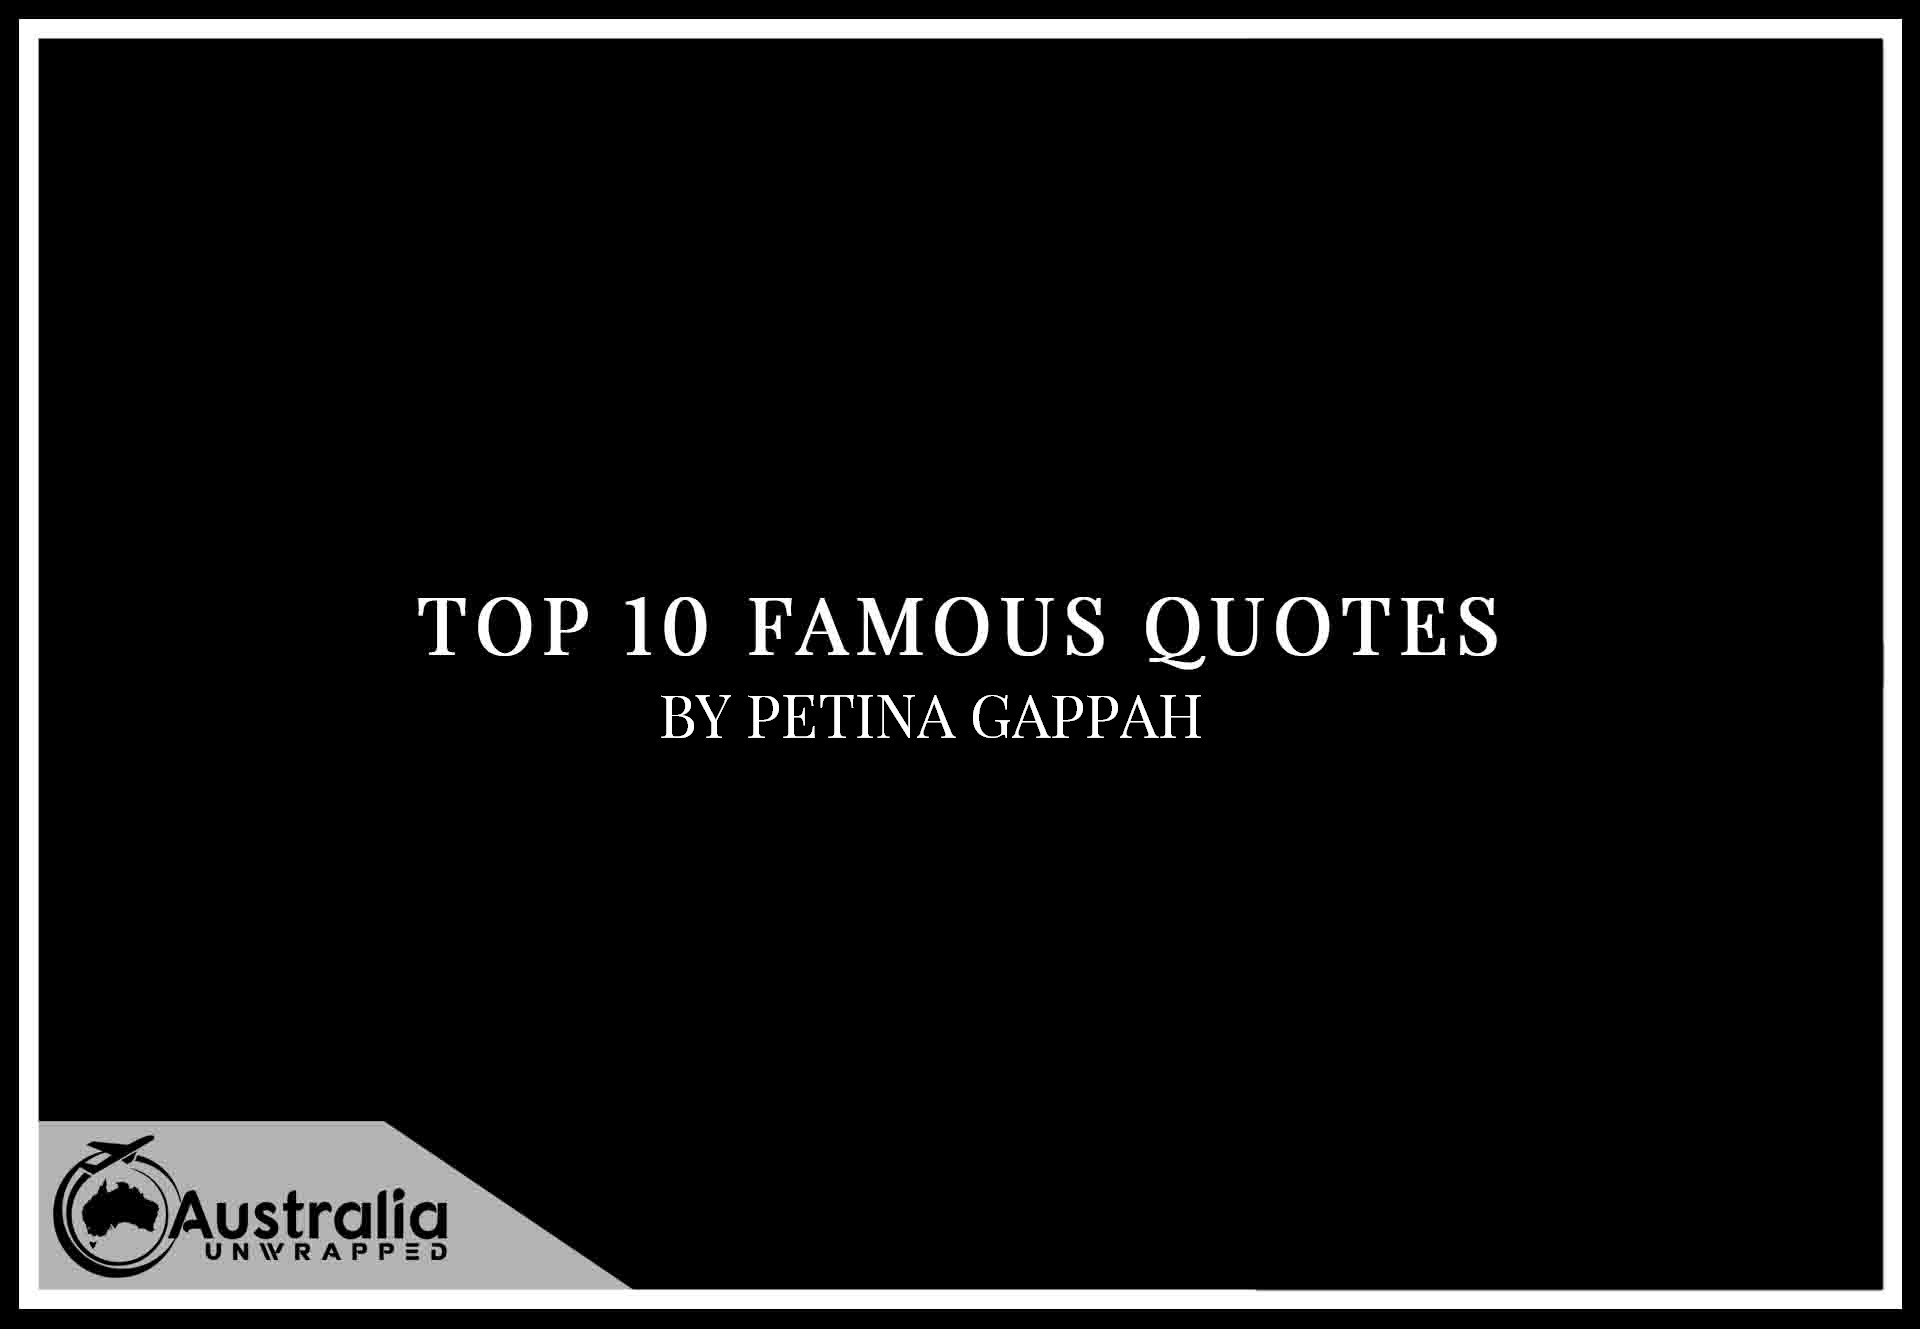 Top 10 Famous Quotes by Author Petina Gappah